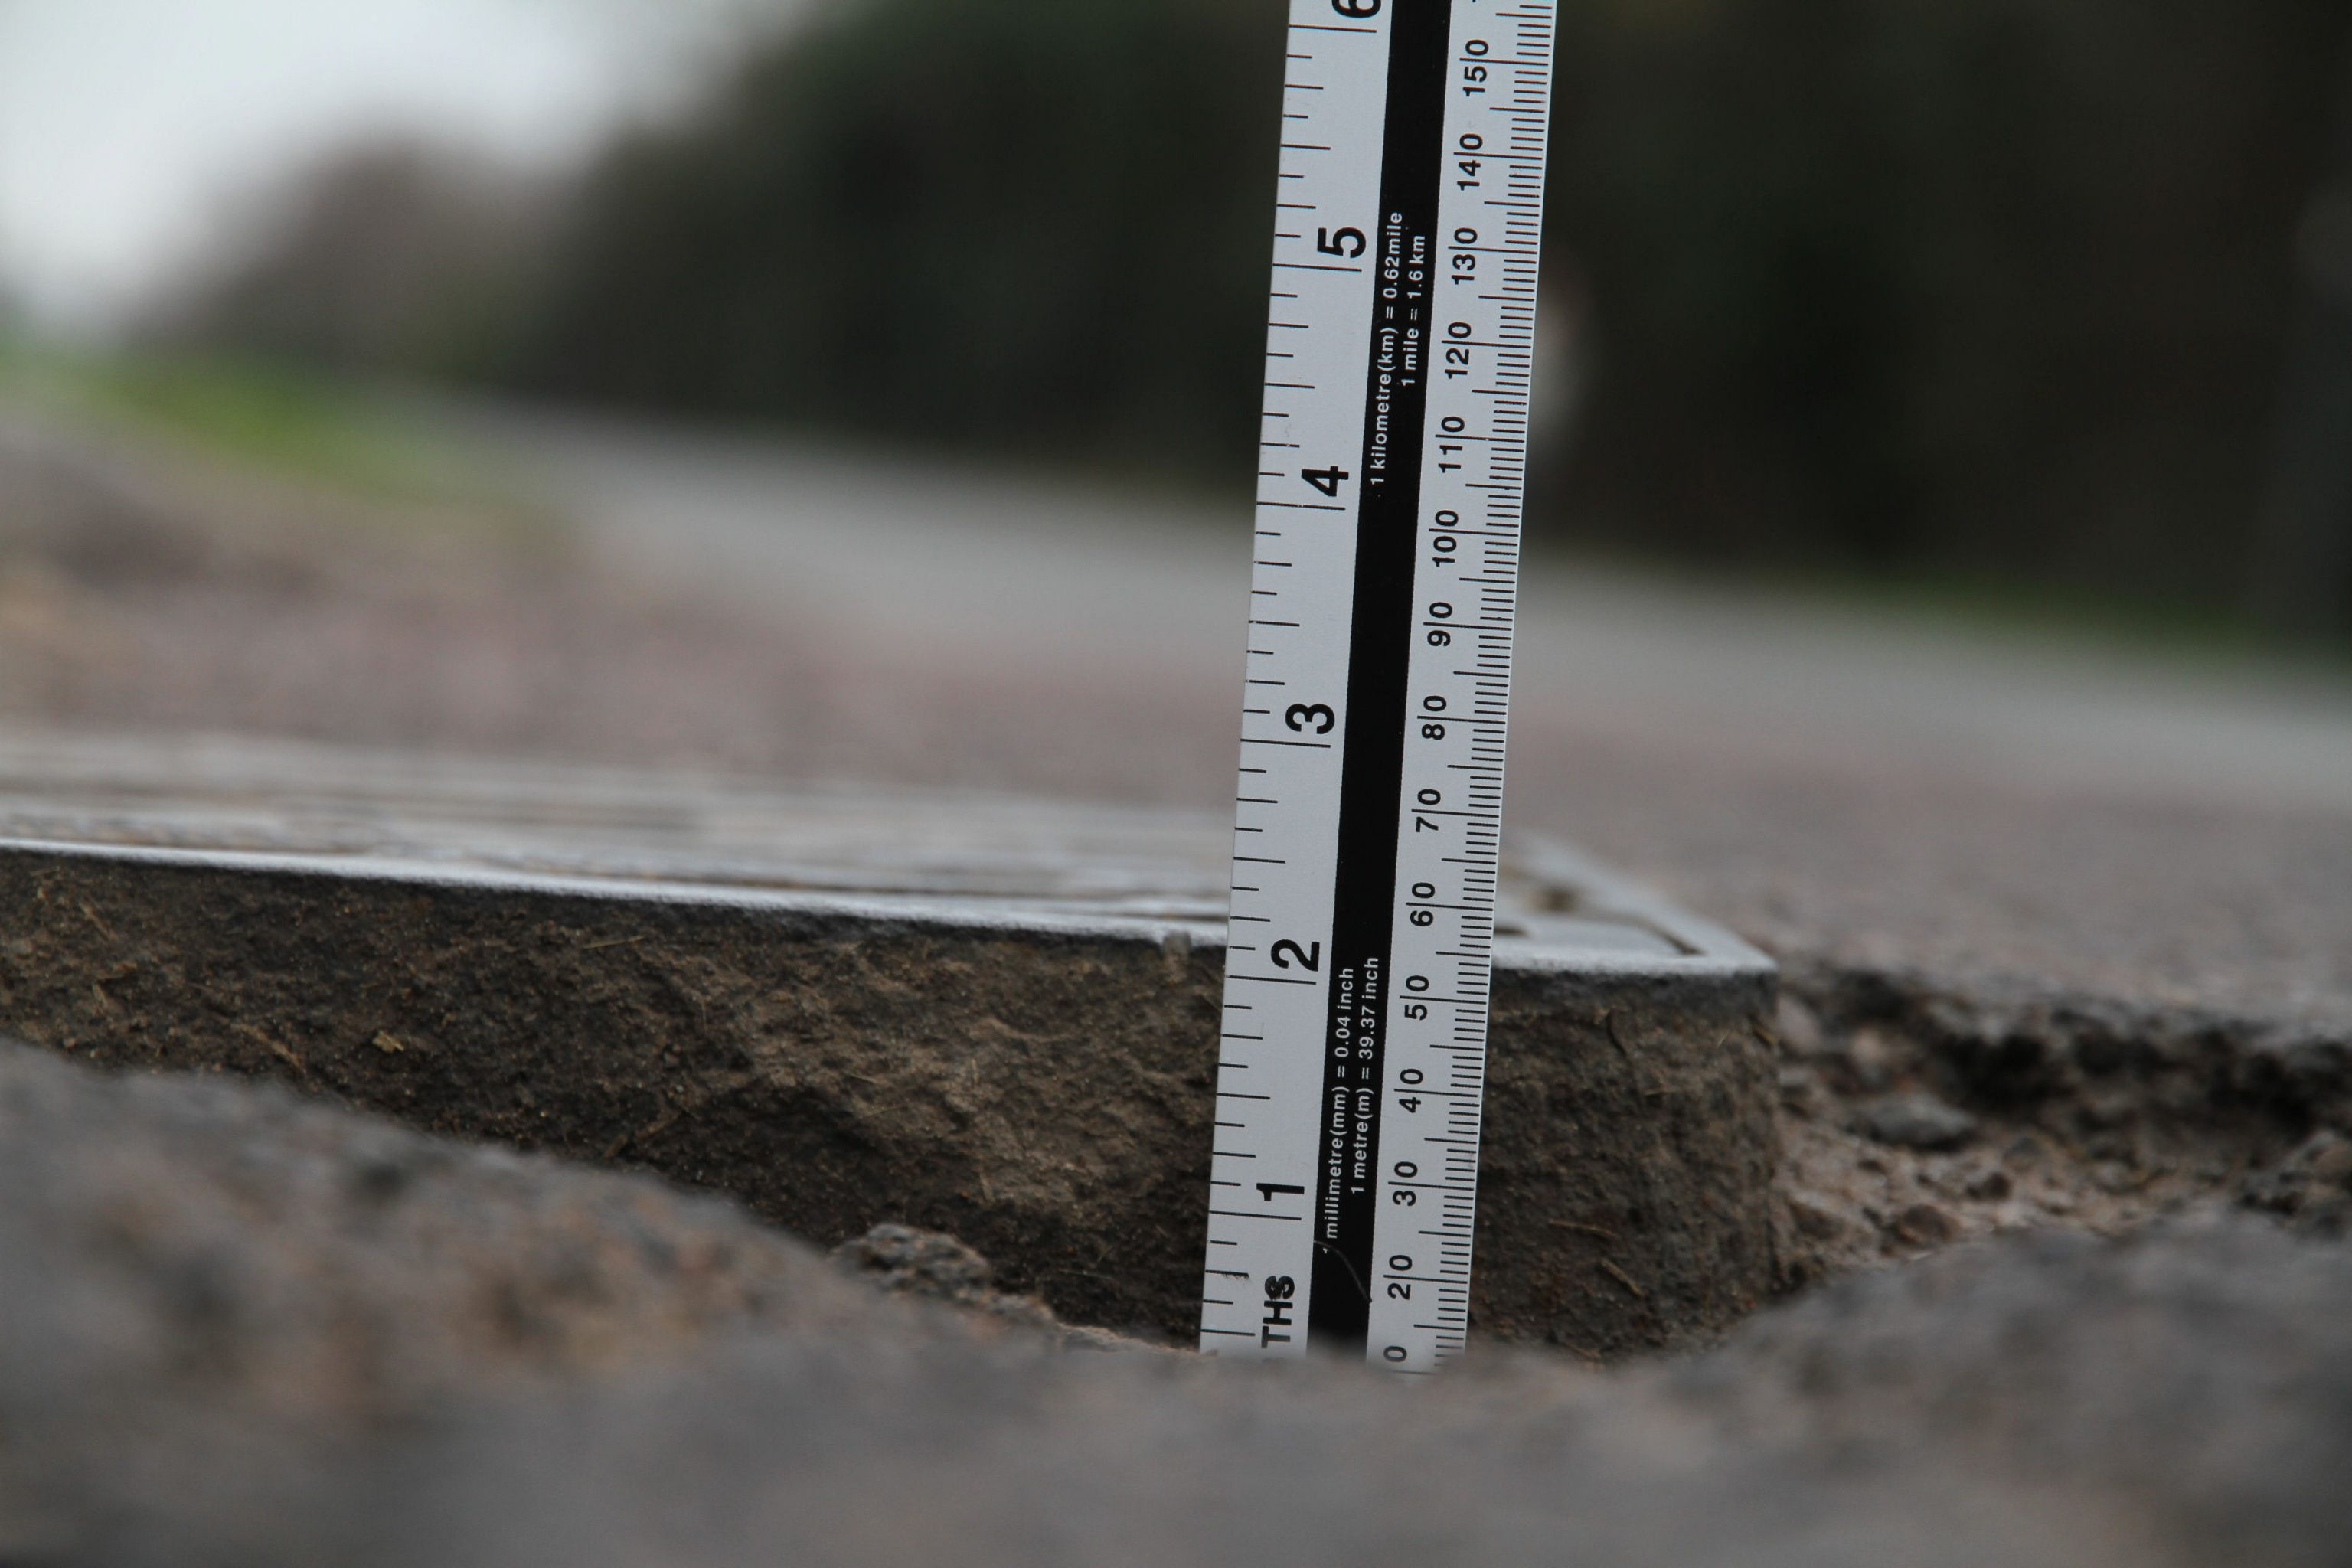 Road Defect measurement